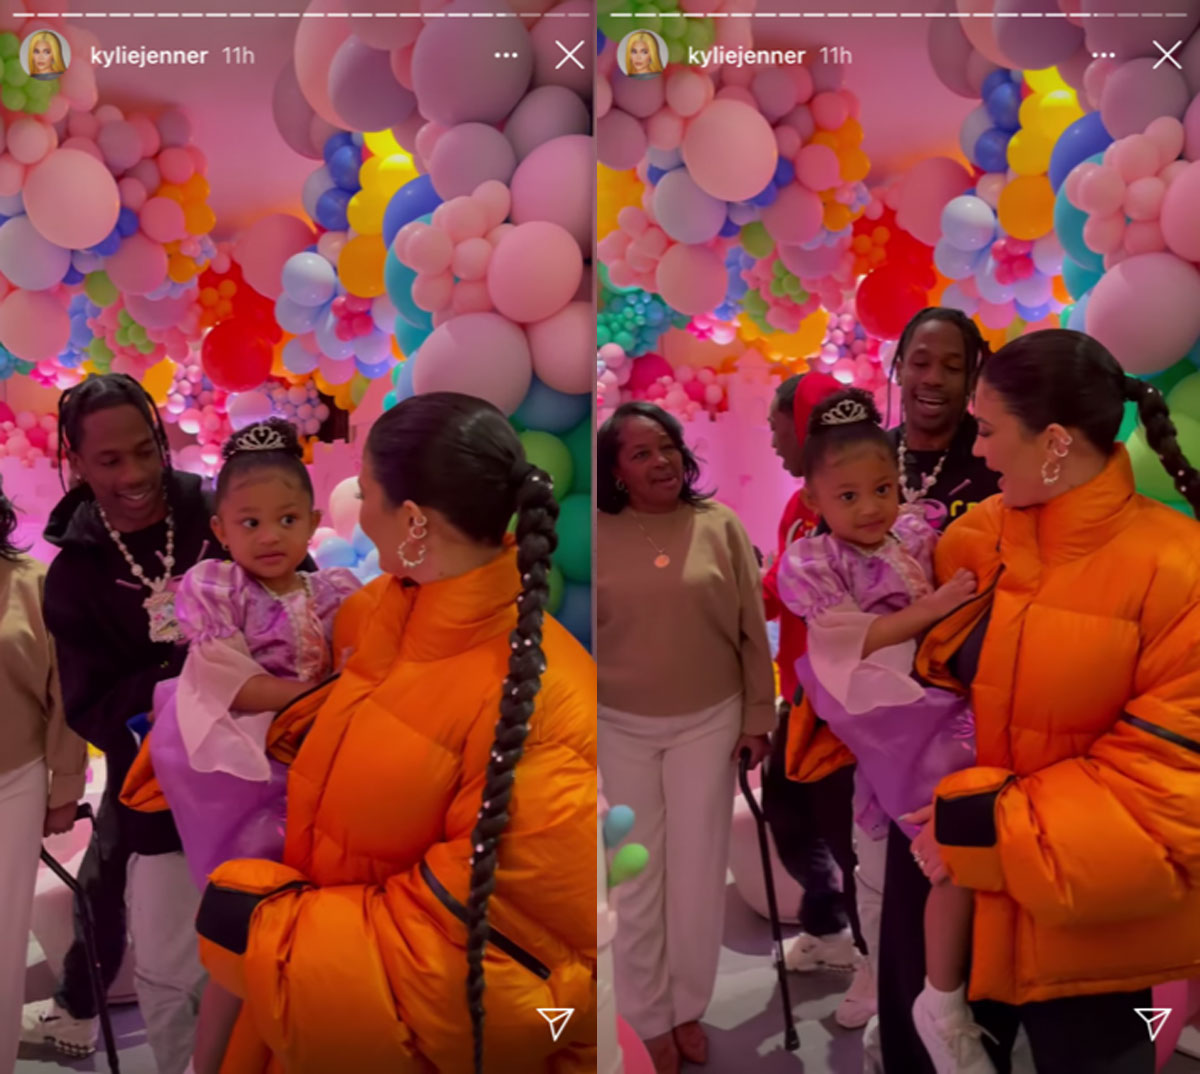 Kylie Jenner is taking heat for Stormi Webster's very crowded third birthday party in the midst of a pandemic!